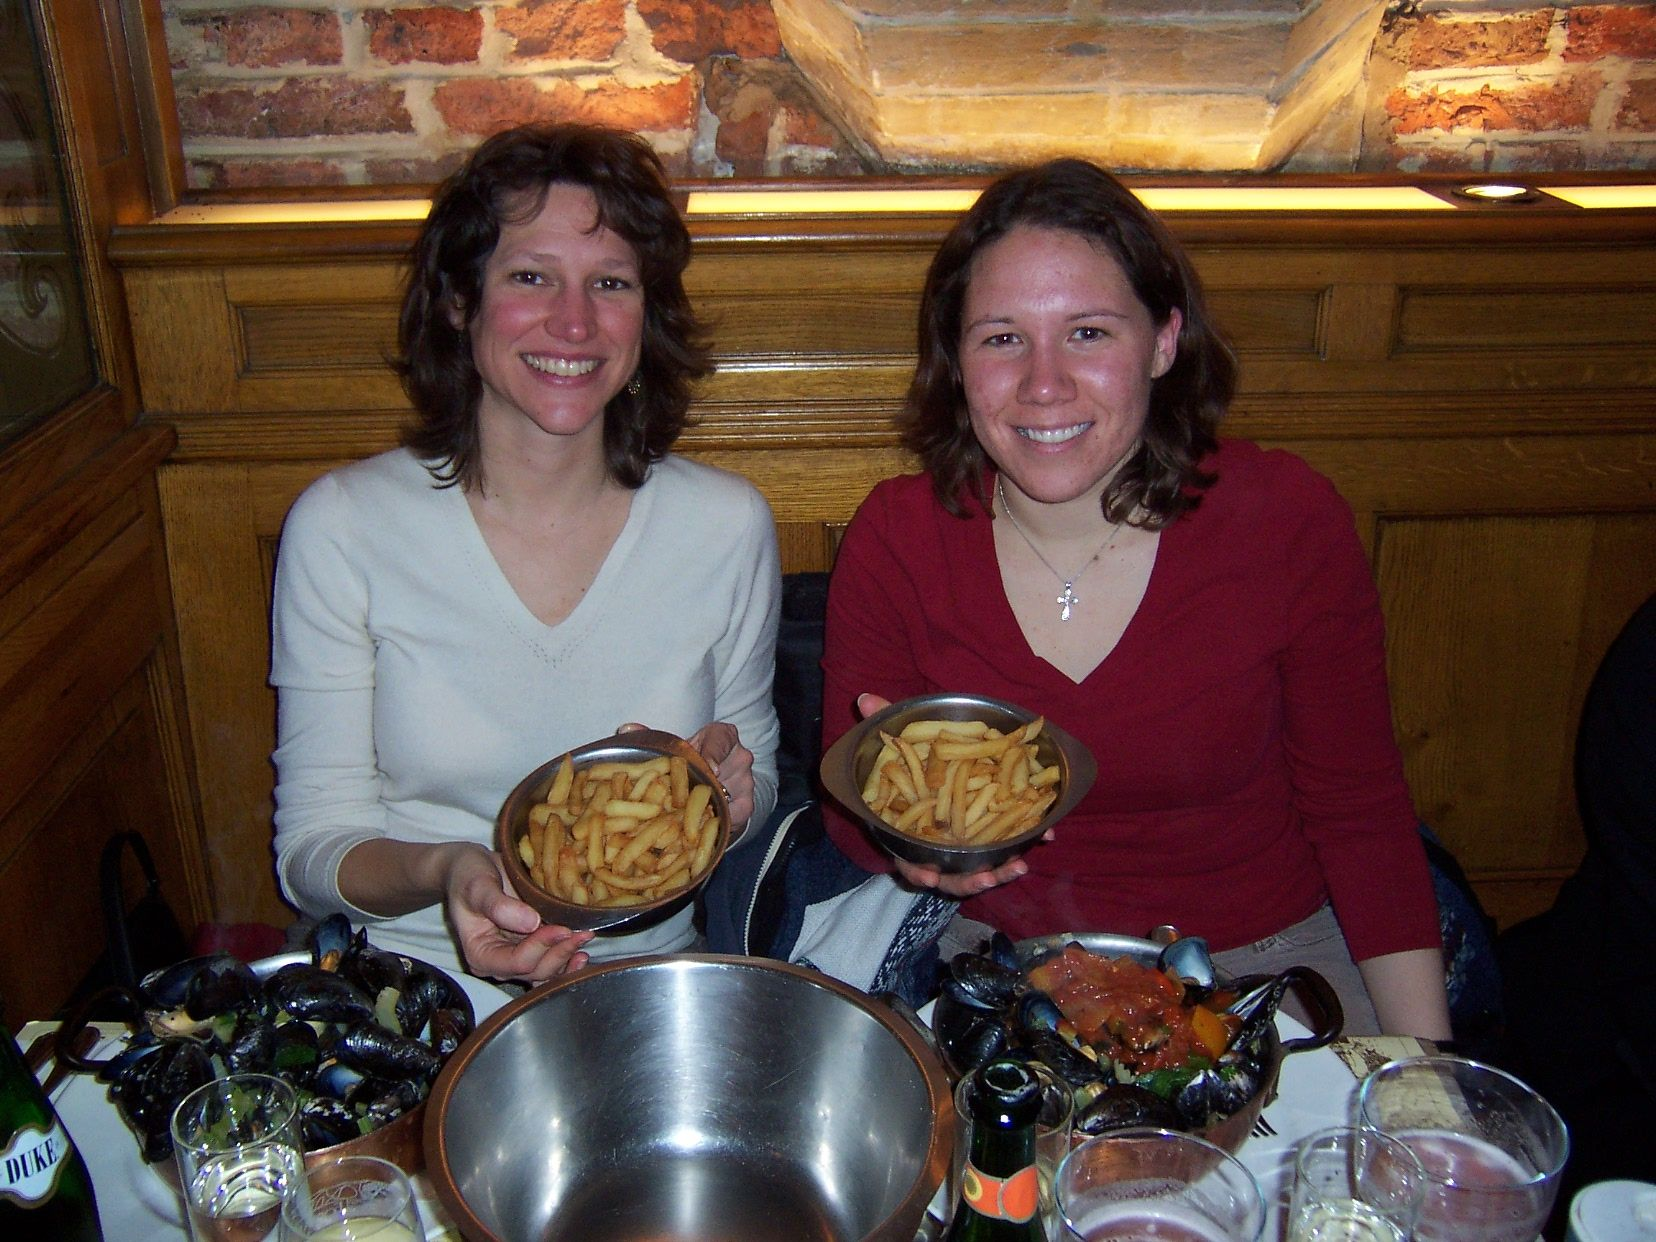 Vivian, program director in Nancy, came to help orient us to life in Brussels. Here we feast on mussels and fries, famous Belgian foods. Bon appetit!